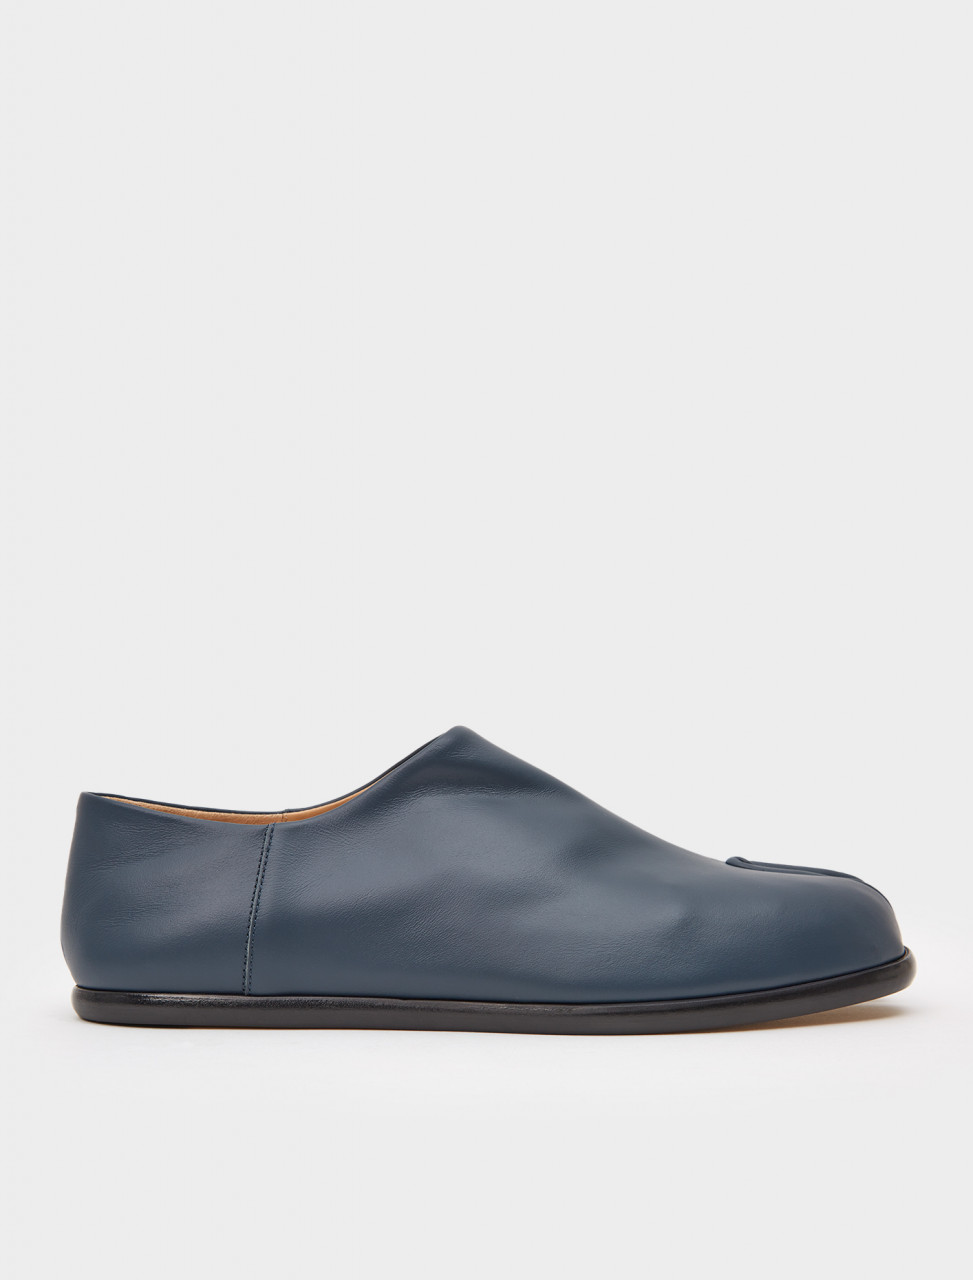 256-S57WR0051-PR516-T7170 MAISON MARGIELA TABI LEATHER SLIP ON DEEP FOREST